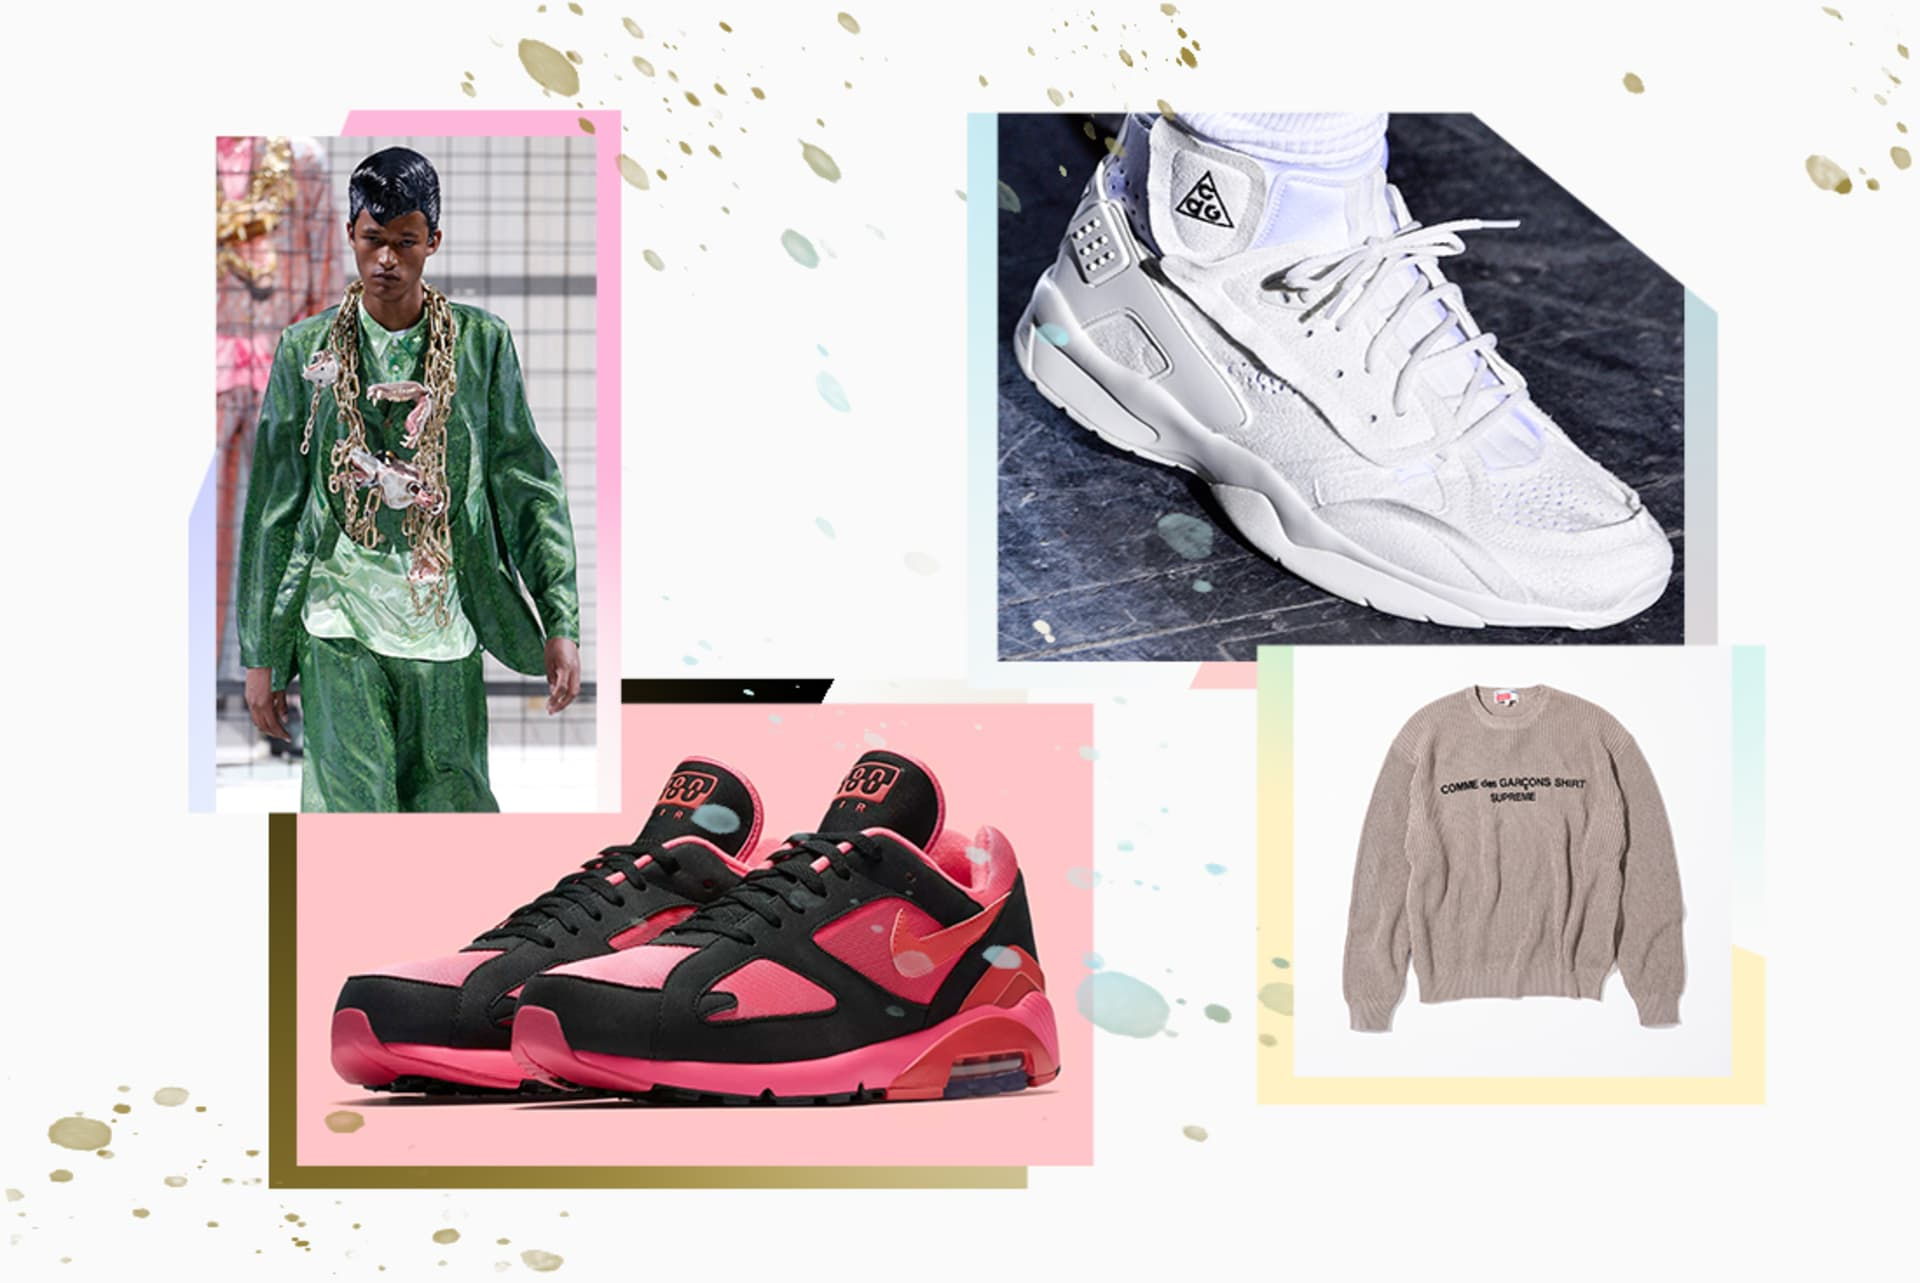 7599e0902eaec0 Best Clothing Brands of 2018  Top Brands of The Year